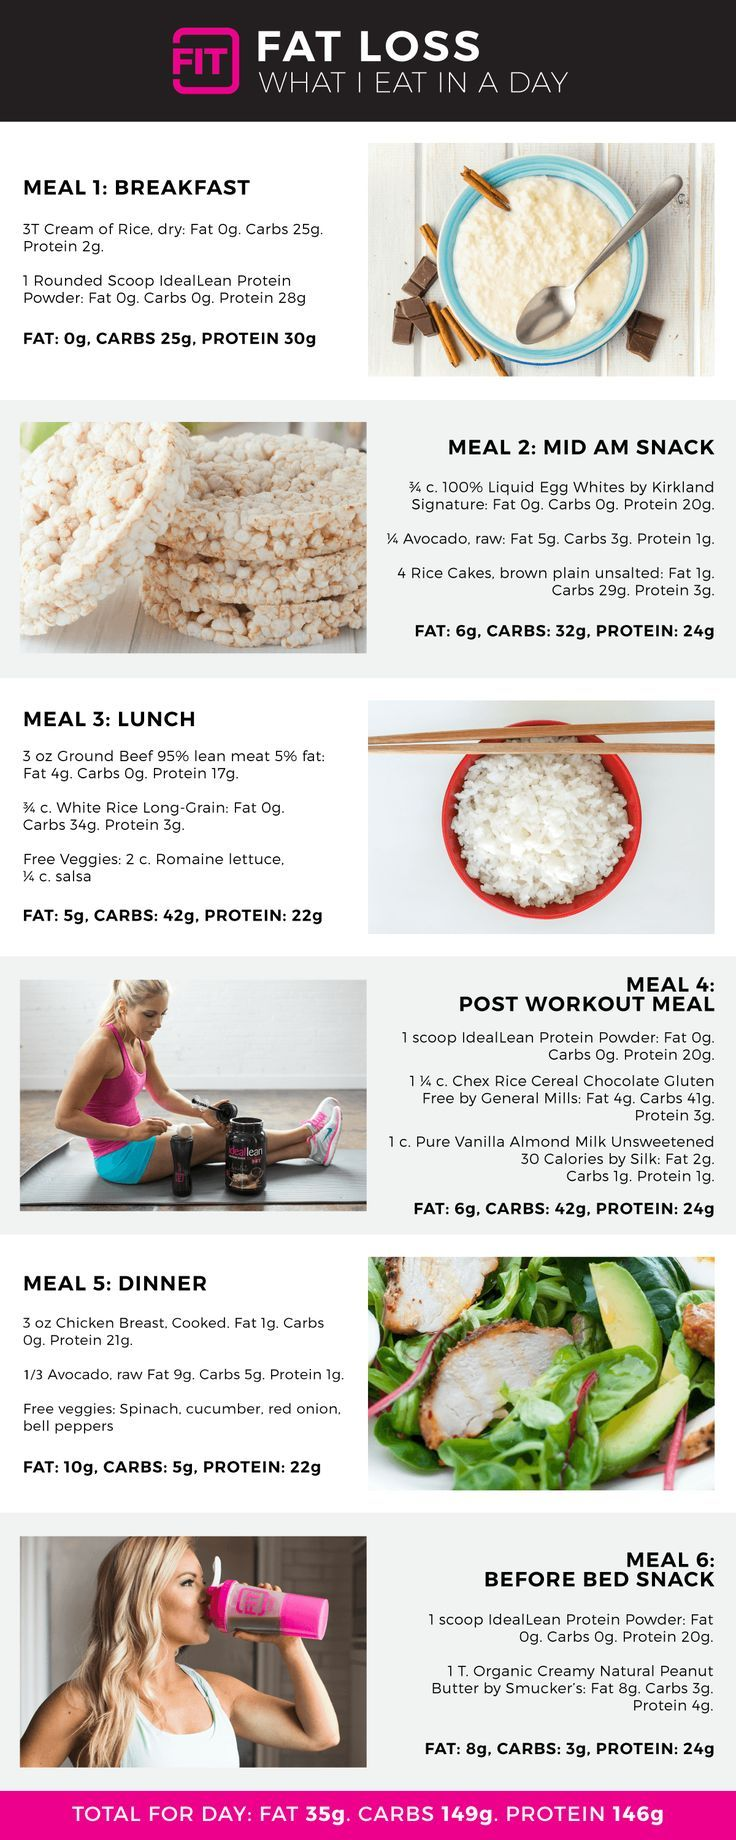 this is an example of what Lindsey eats in a day for fat loss